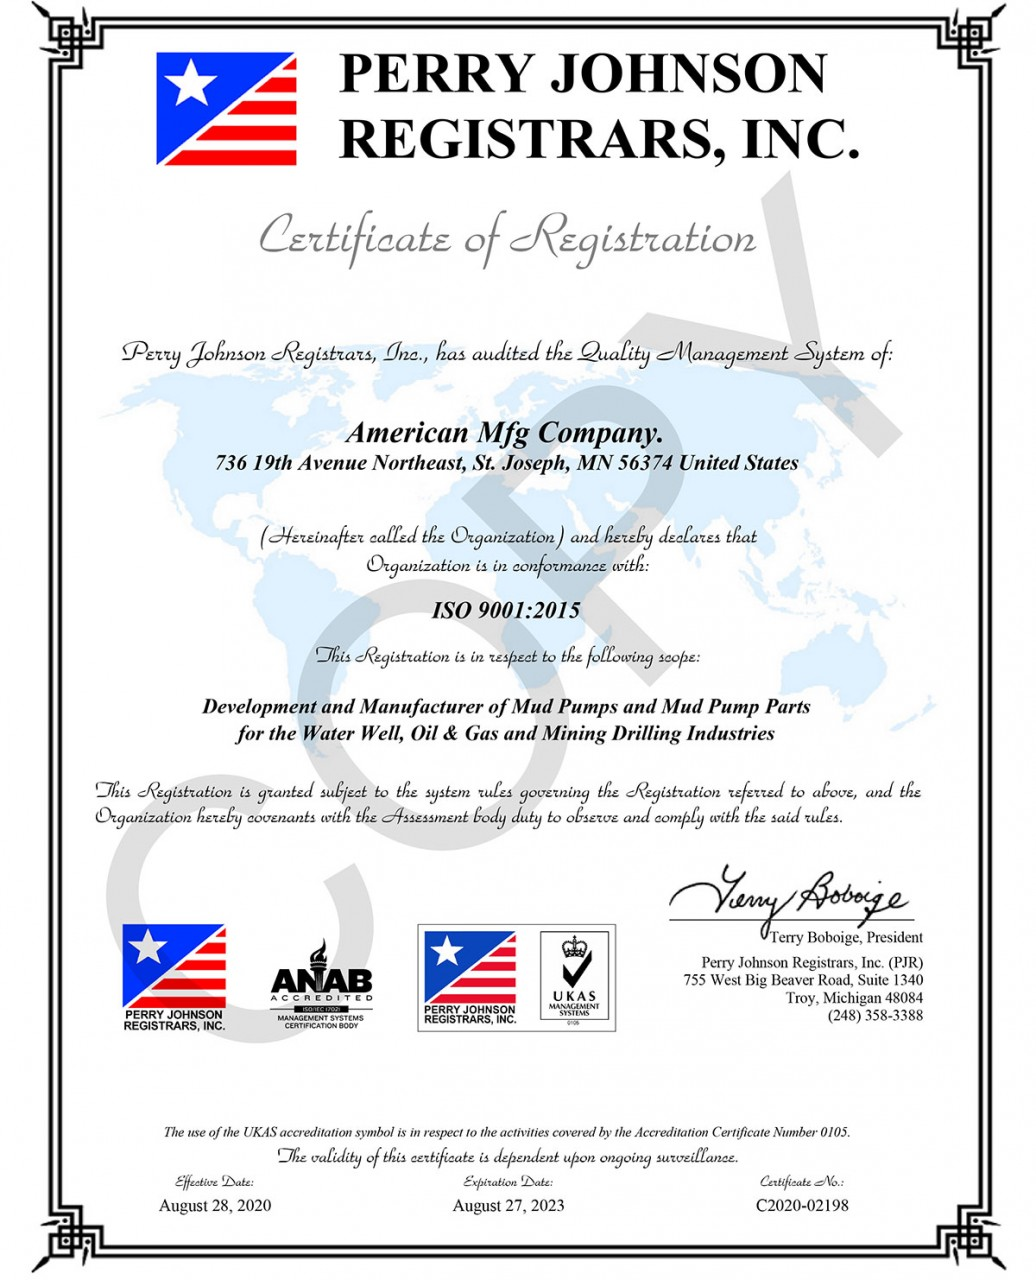 American-Mfg-Company-Color-Certificate